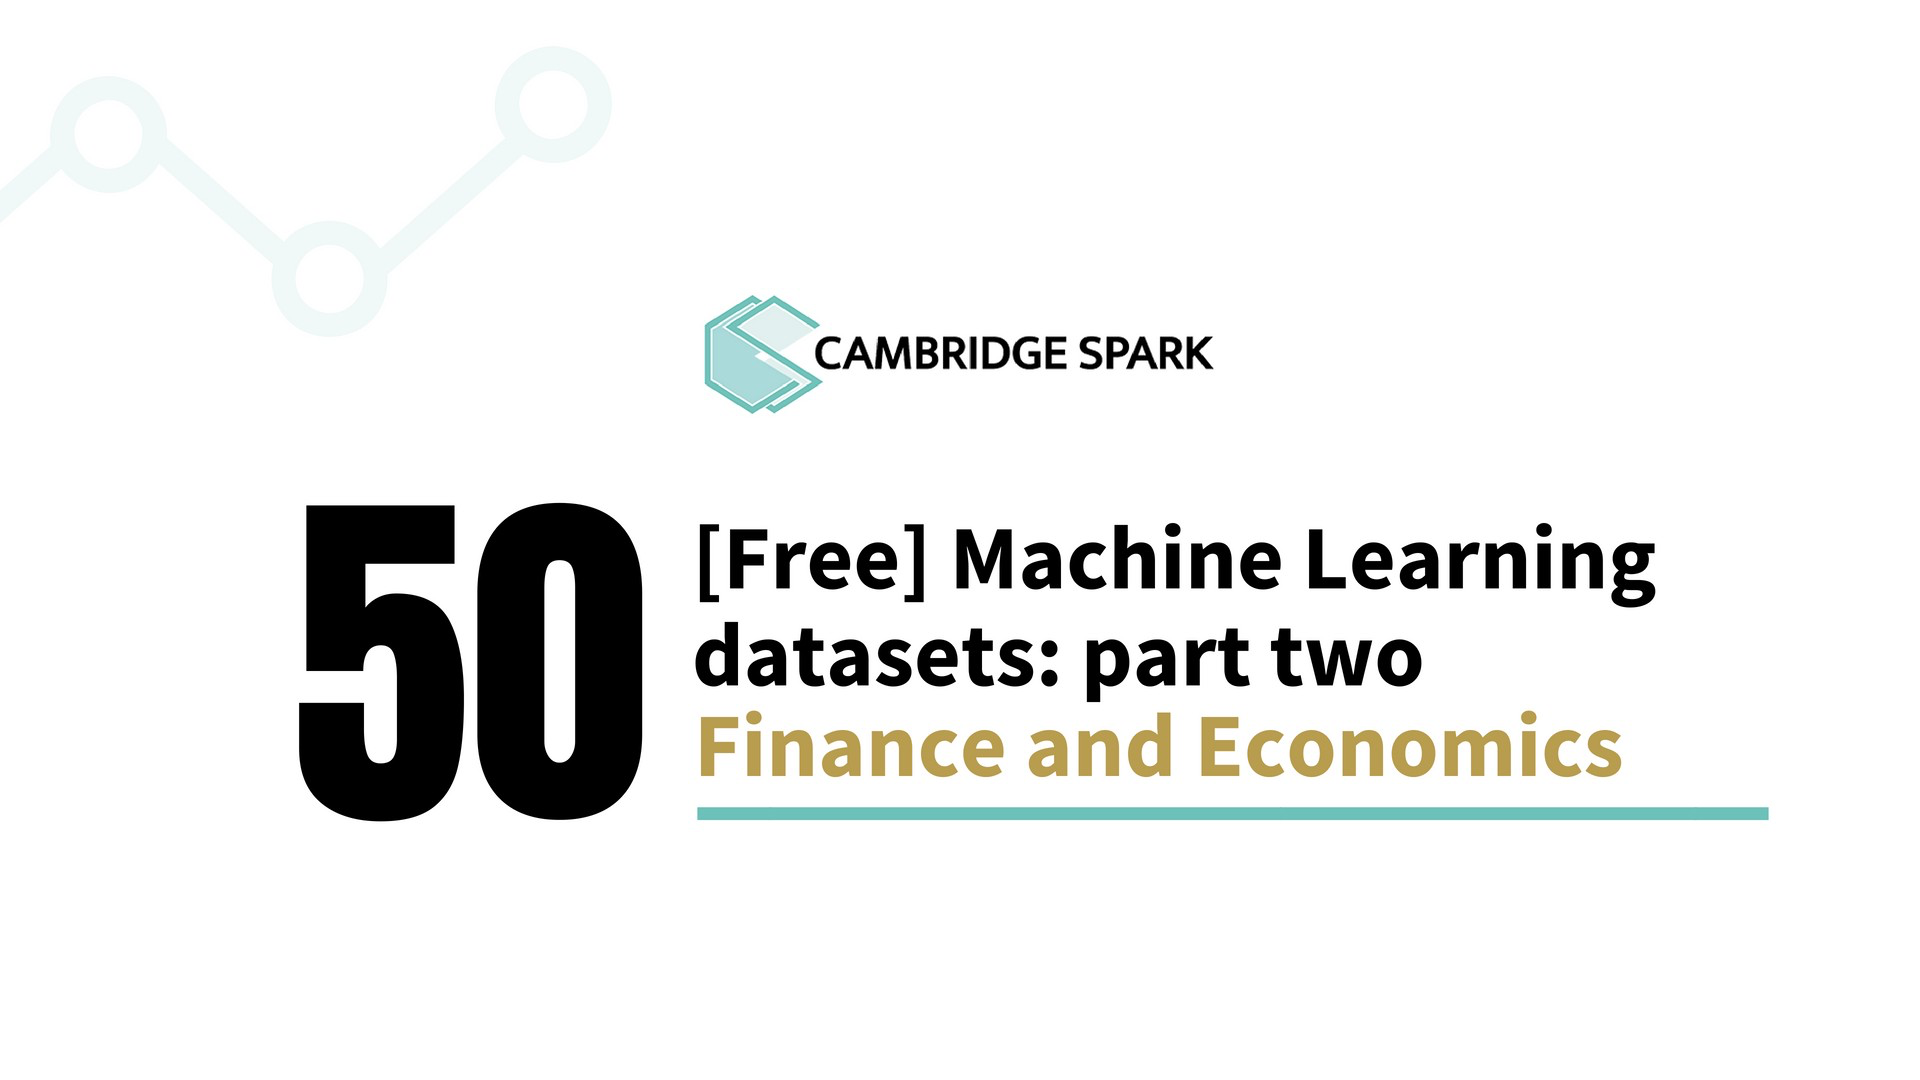 50 free Machine Learning datasets: finance and economics